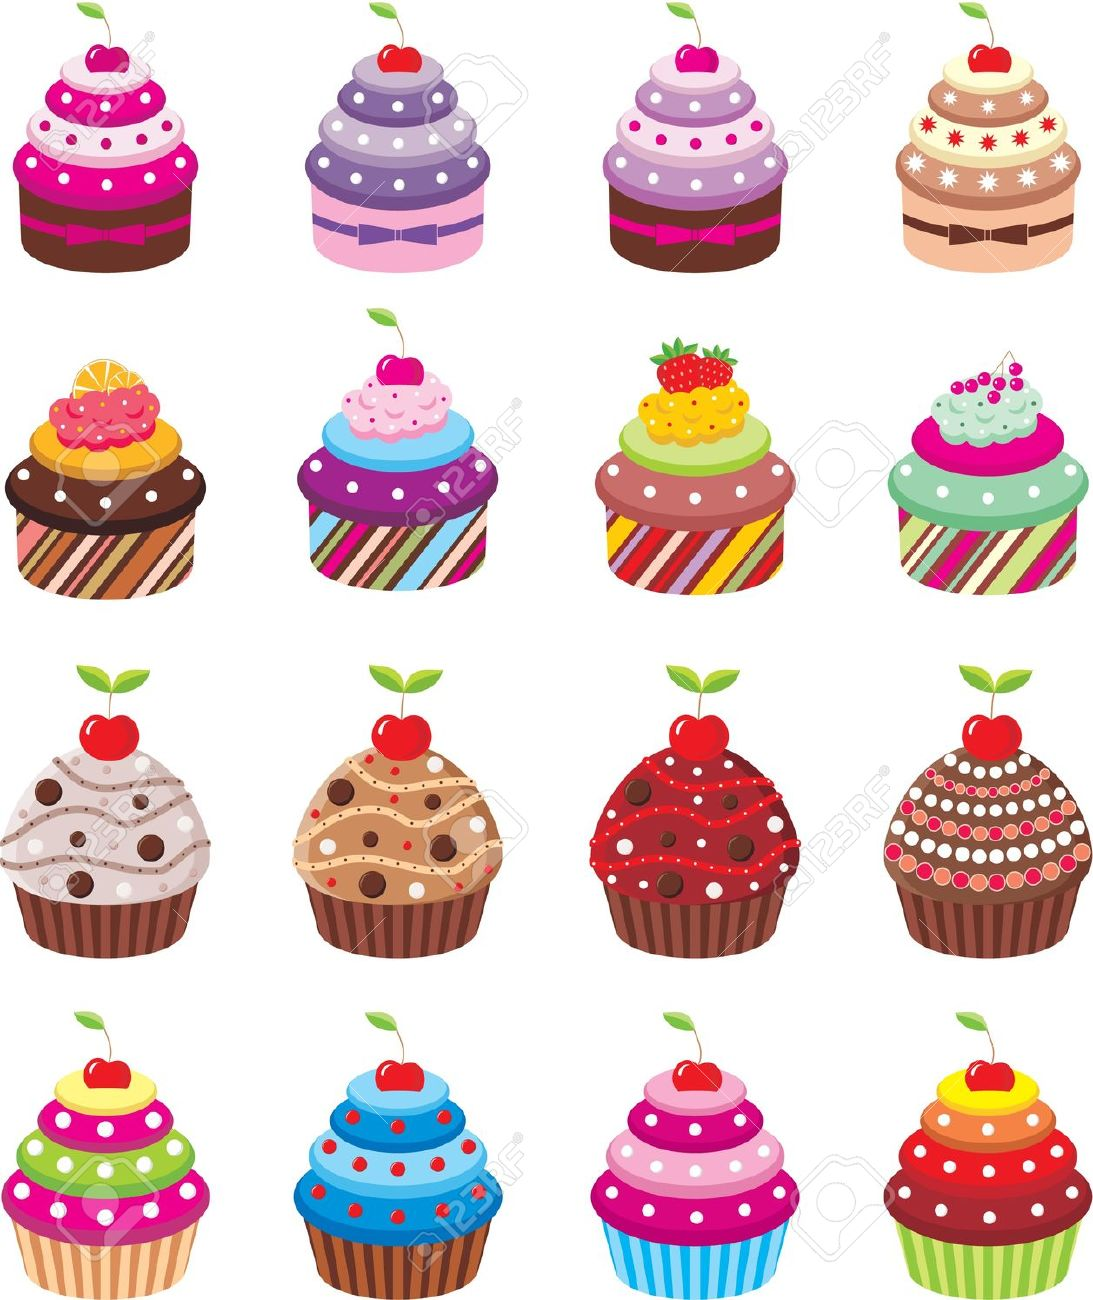 Cupcakes Royalty Free Cliparts, Vectors, And Stock Illustration.